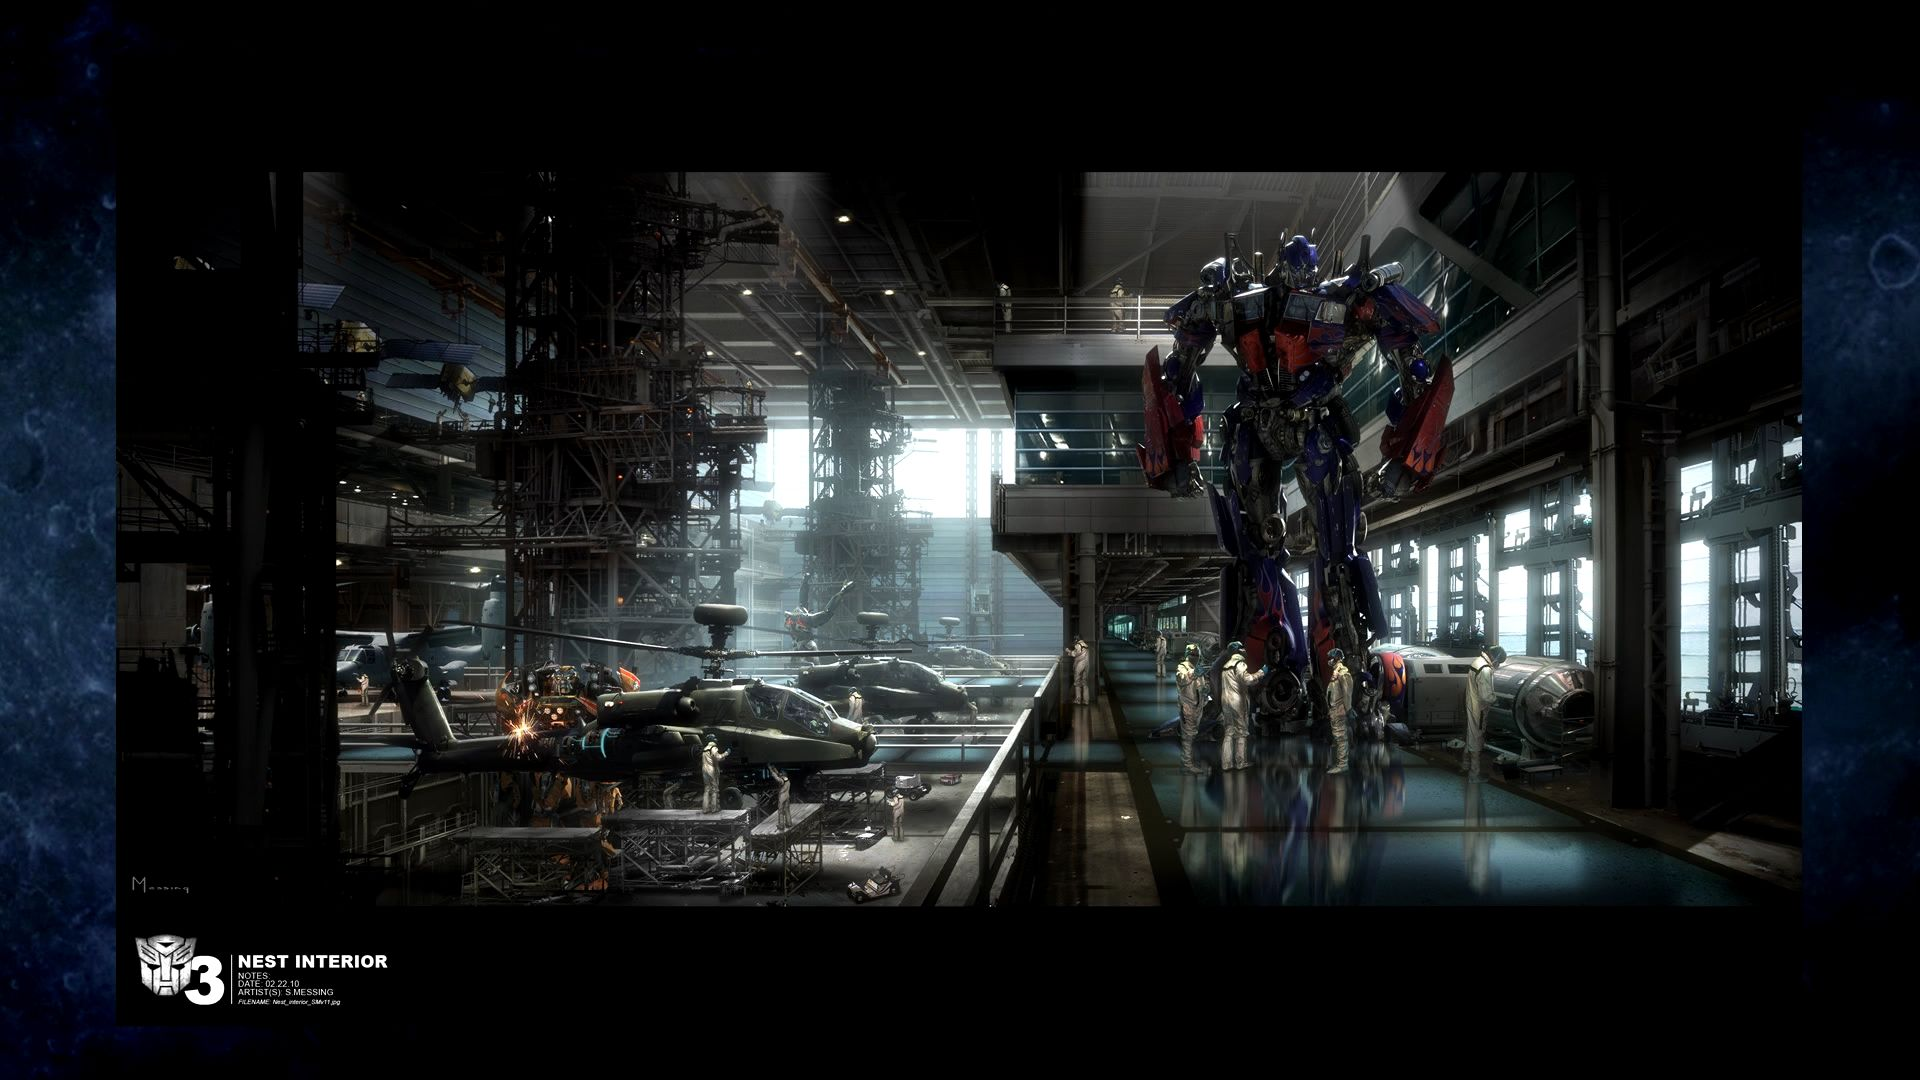 Fall Of Cybertron Wallpaper Hd Dotm Another Part Of Concept Arts Tfw2005 The 2005 Boards